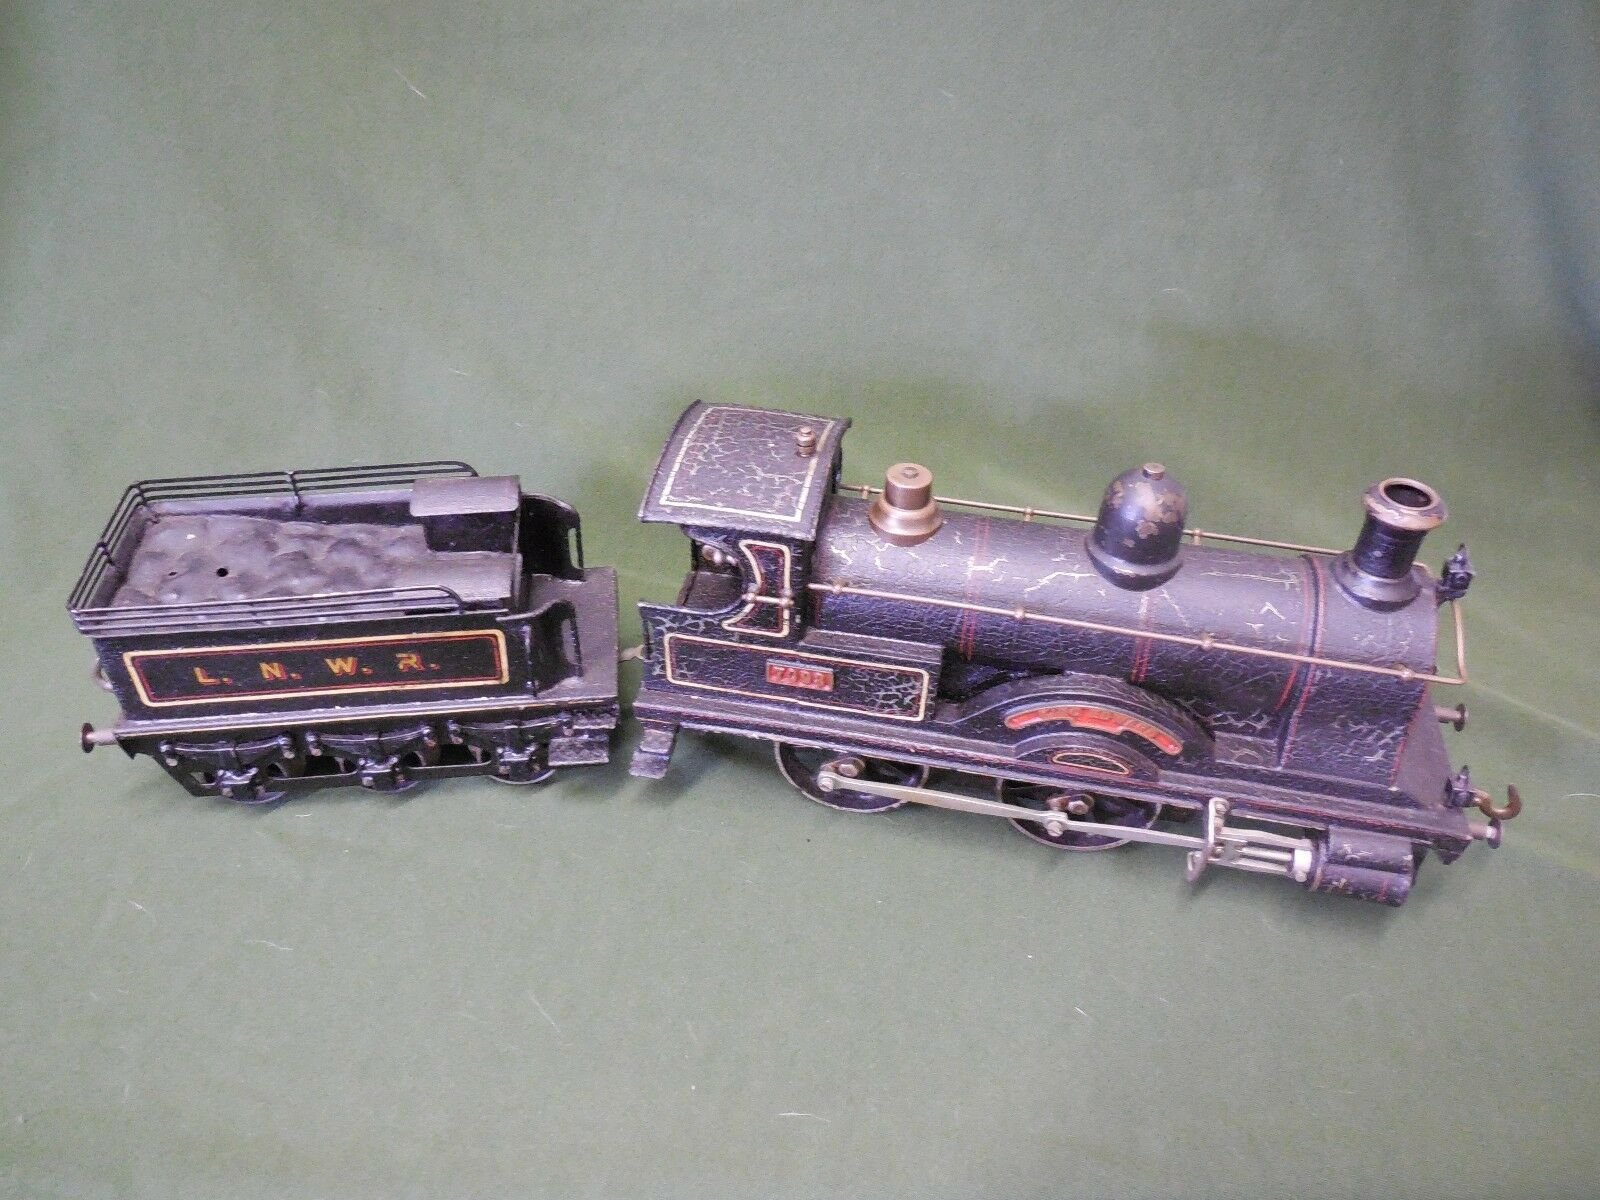 Bing,Gauge 111, King Edward,Loco+Tender,Bellissimo Original Condition